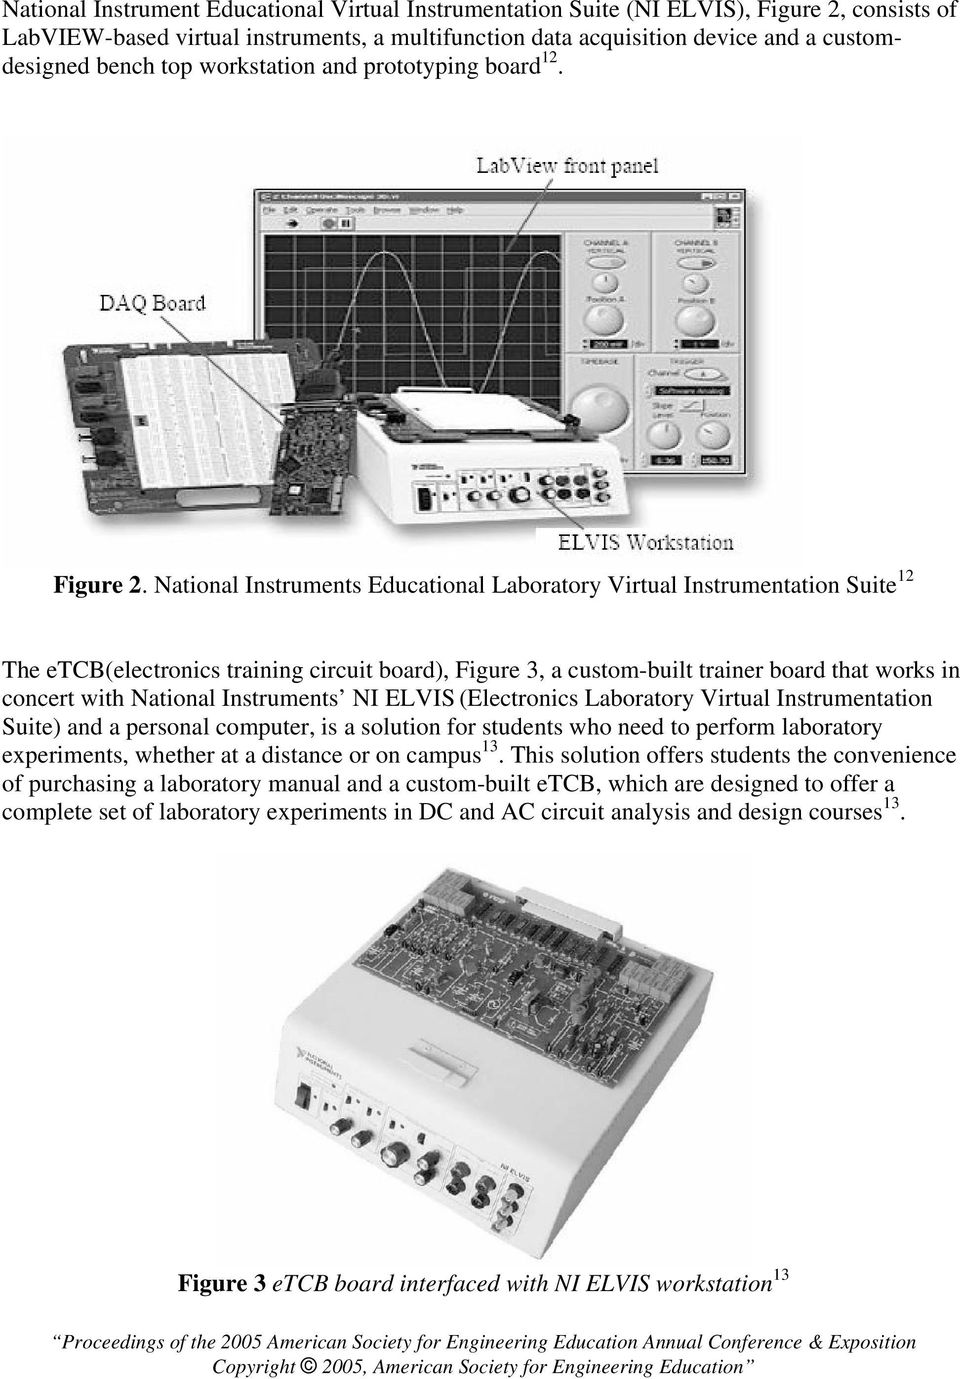 National Instruments Educational Laboratory Virtual Instrumentation Suite 12 The etcb(electronics training circuit board), Figure 3, a custom-built trainer board that works in concert with National